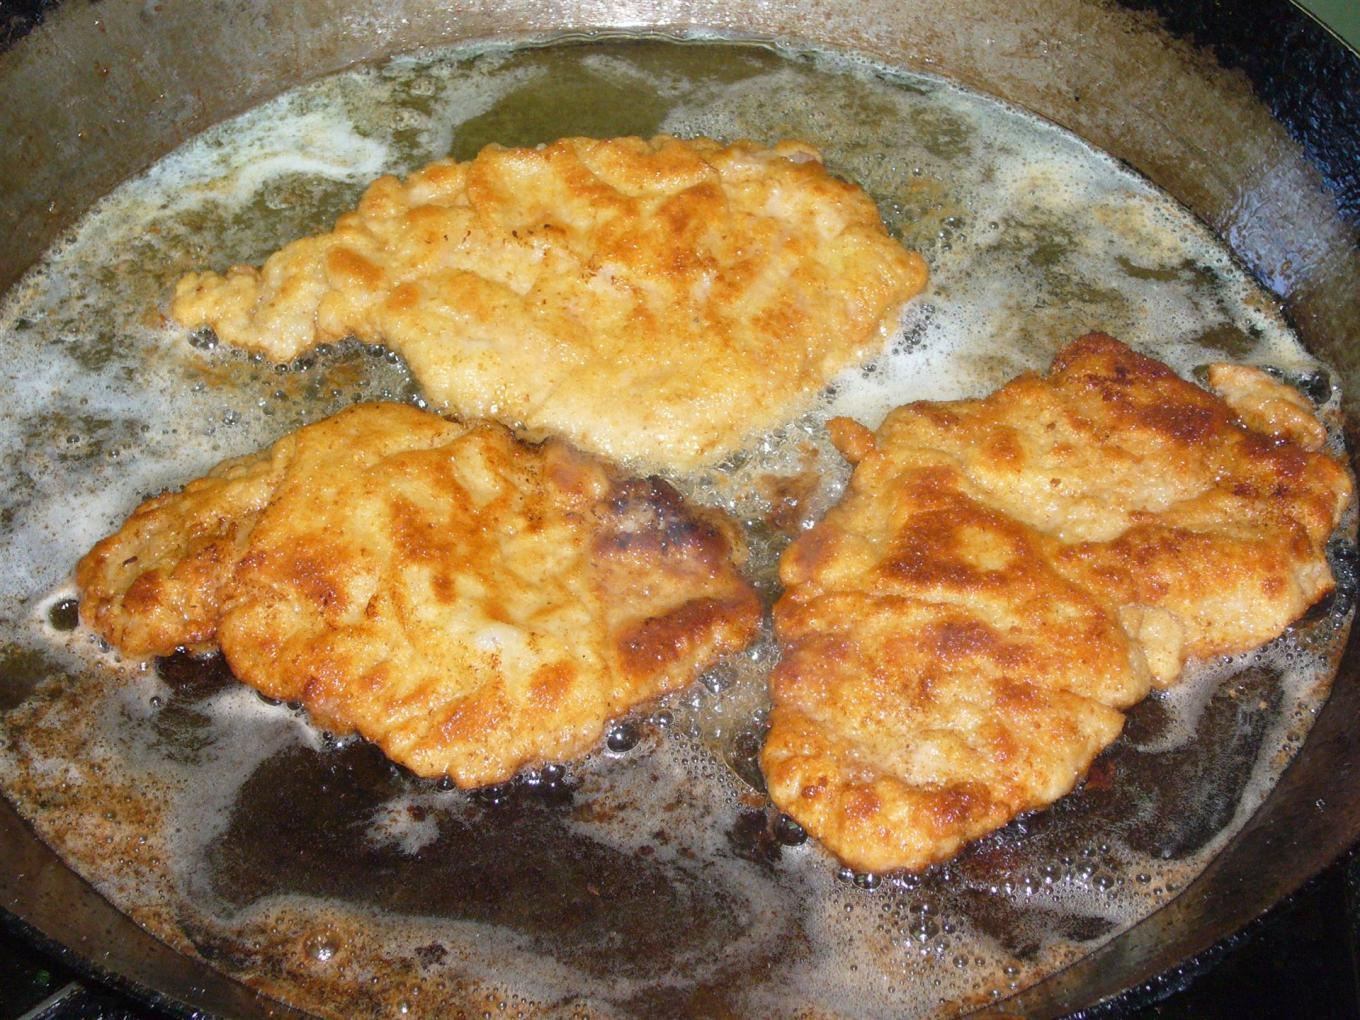 Schnitzel - fried in clarified butter